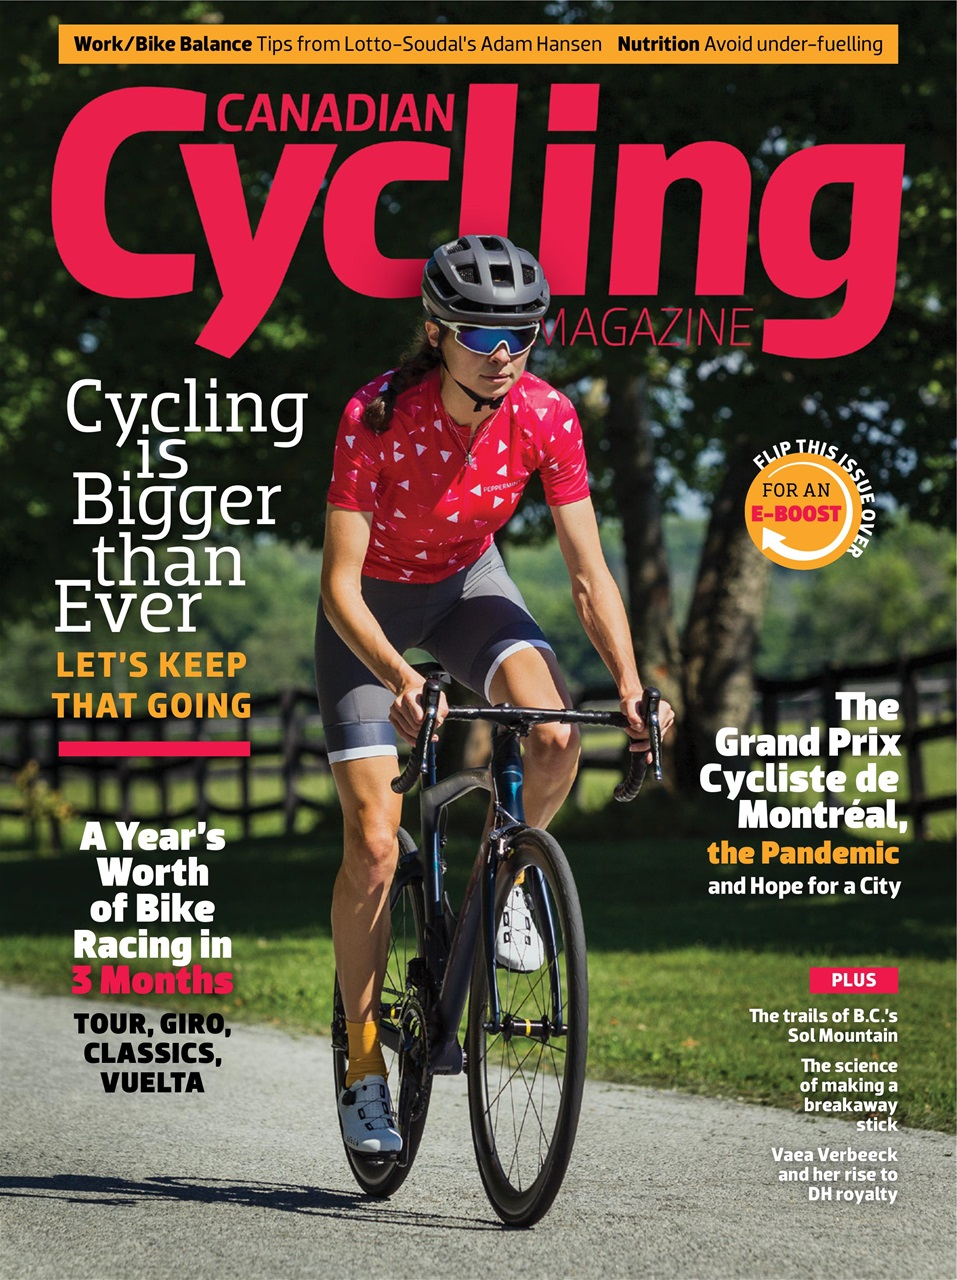 Canadian Cycling Magazine Joins Mens Journal in Rating